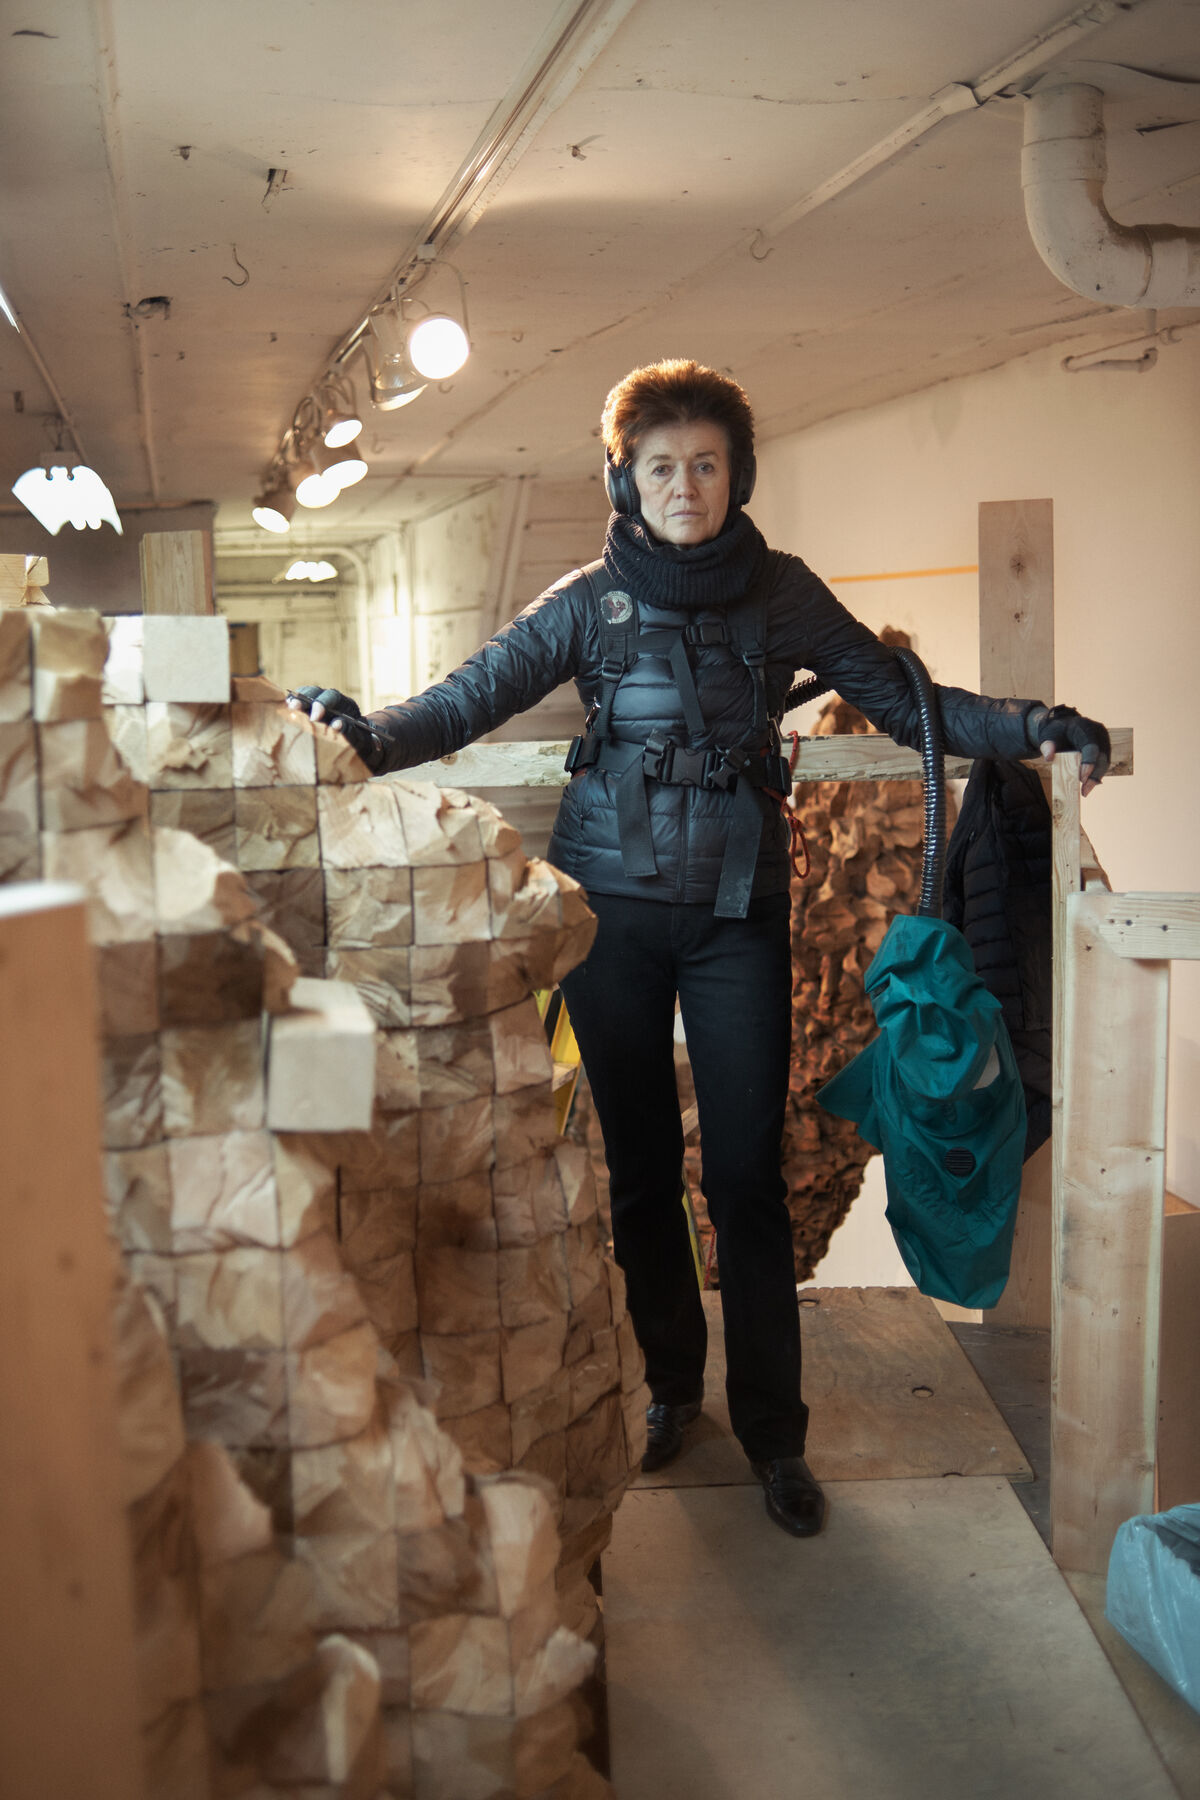 Portrait of Ursula von Rydingsvard in her Bushwick studio by Alex John Beck for Artsy.